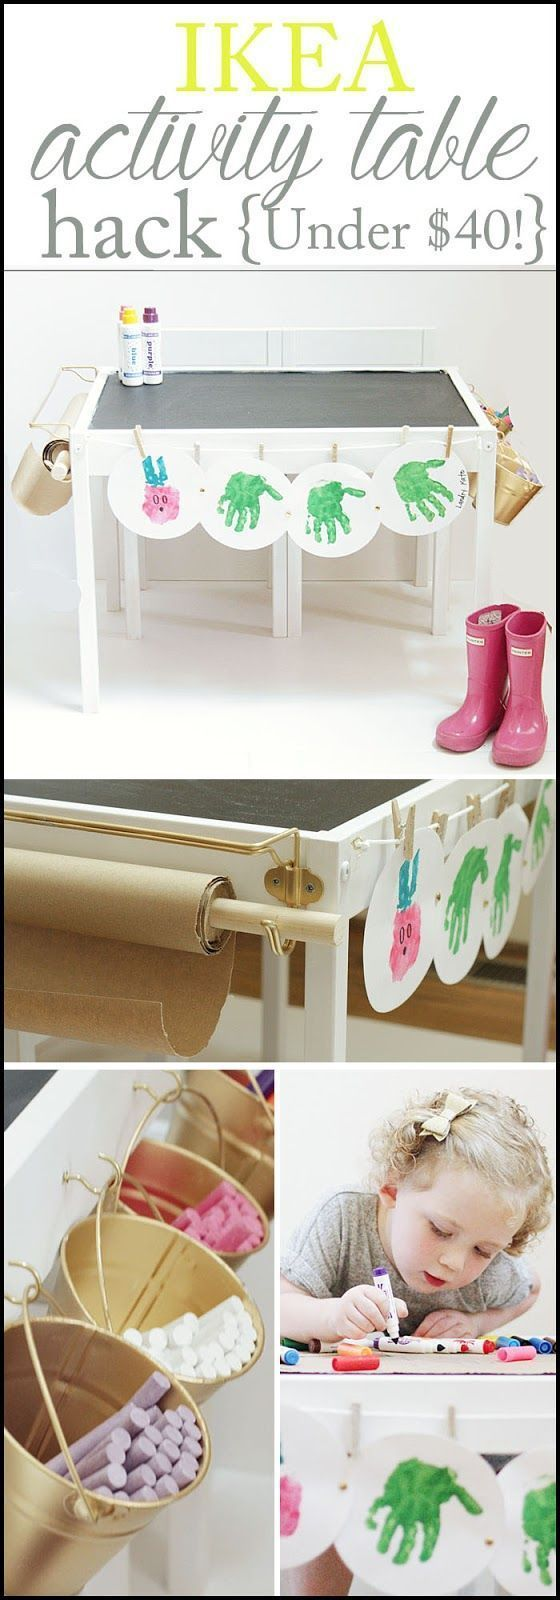 New Ben 10 Childrens Kids Toys Bedroom Storage Seat Stool: 17 Best Ideas About Ikea Hack Kids On Pinterest